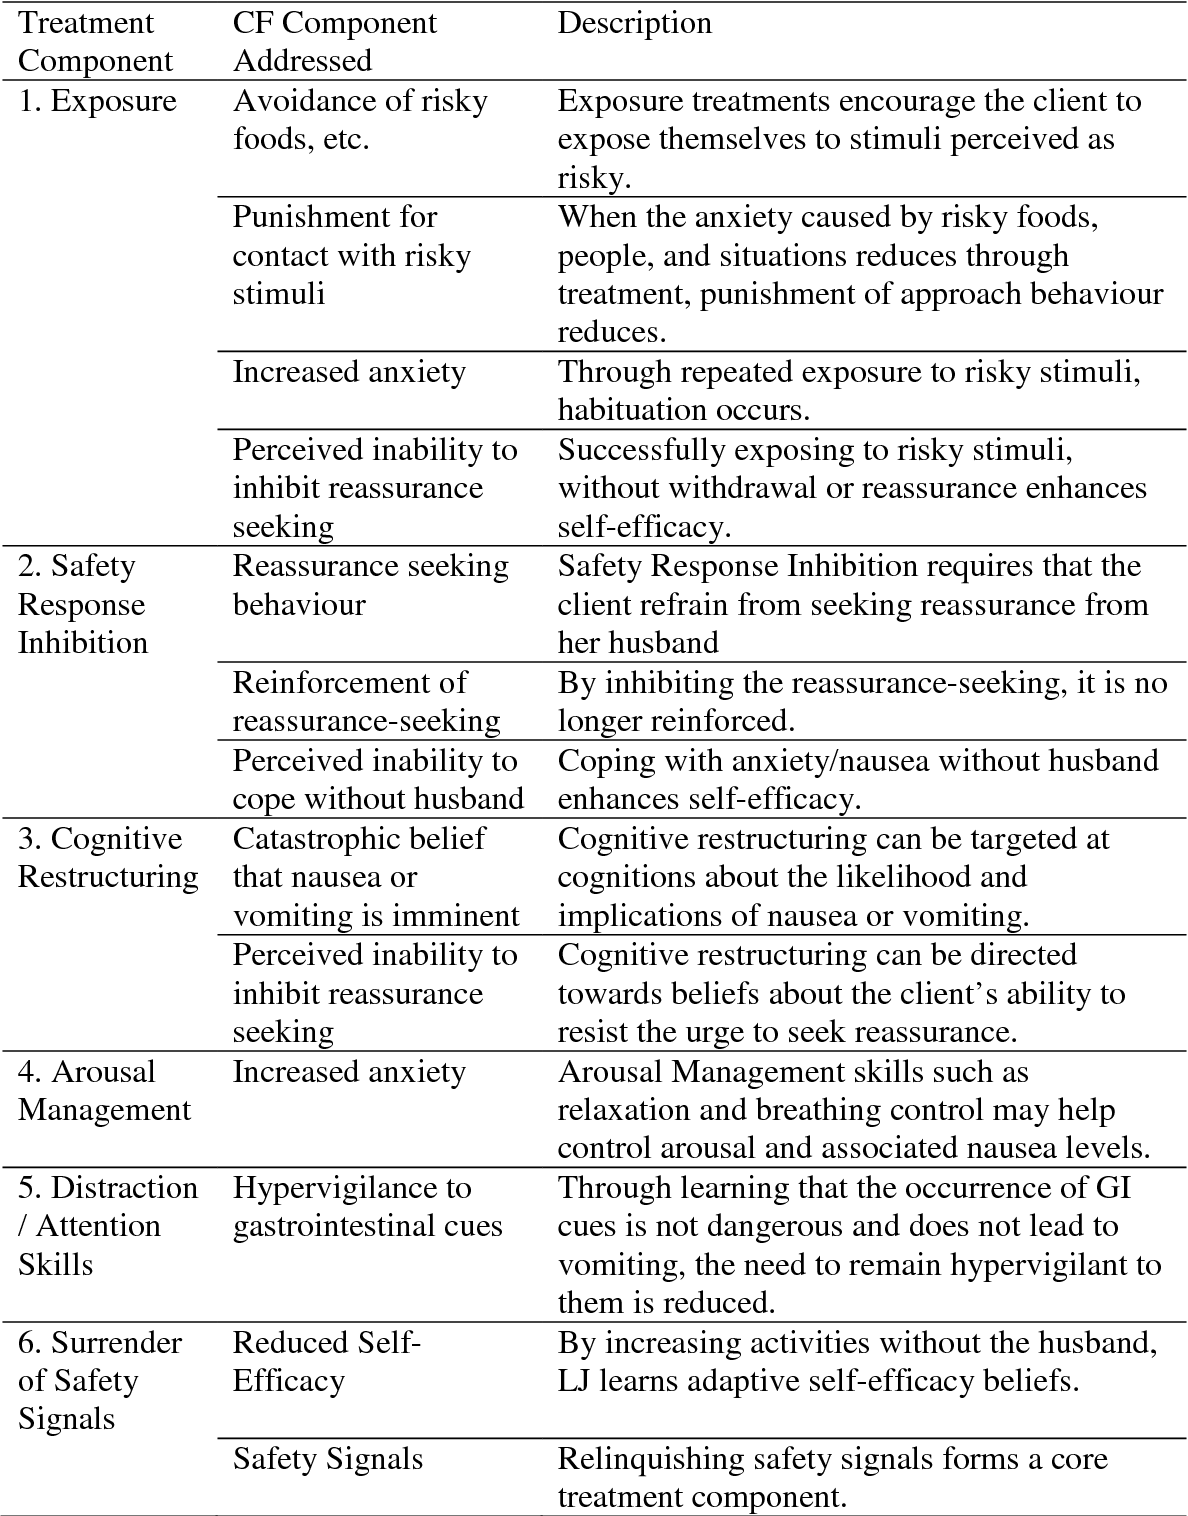 Pdf) evidence-based psychodynamic treatments for anxiety disorders.